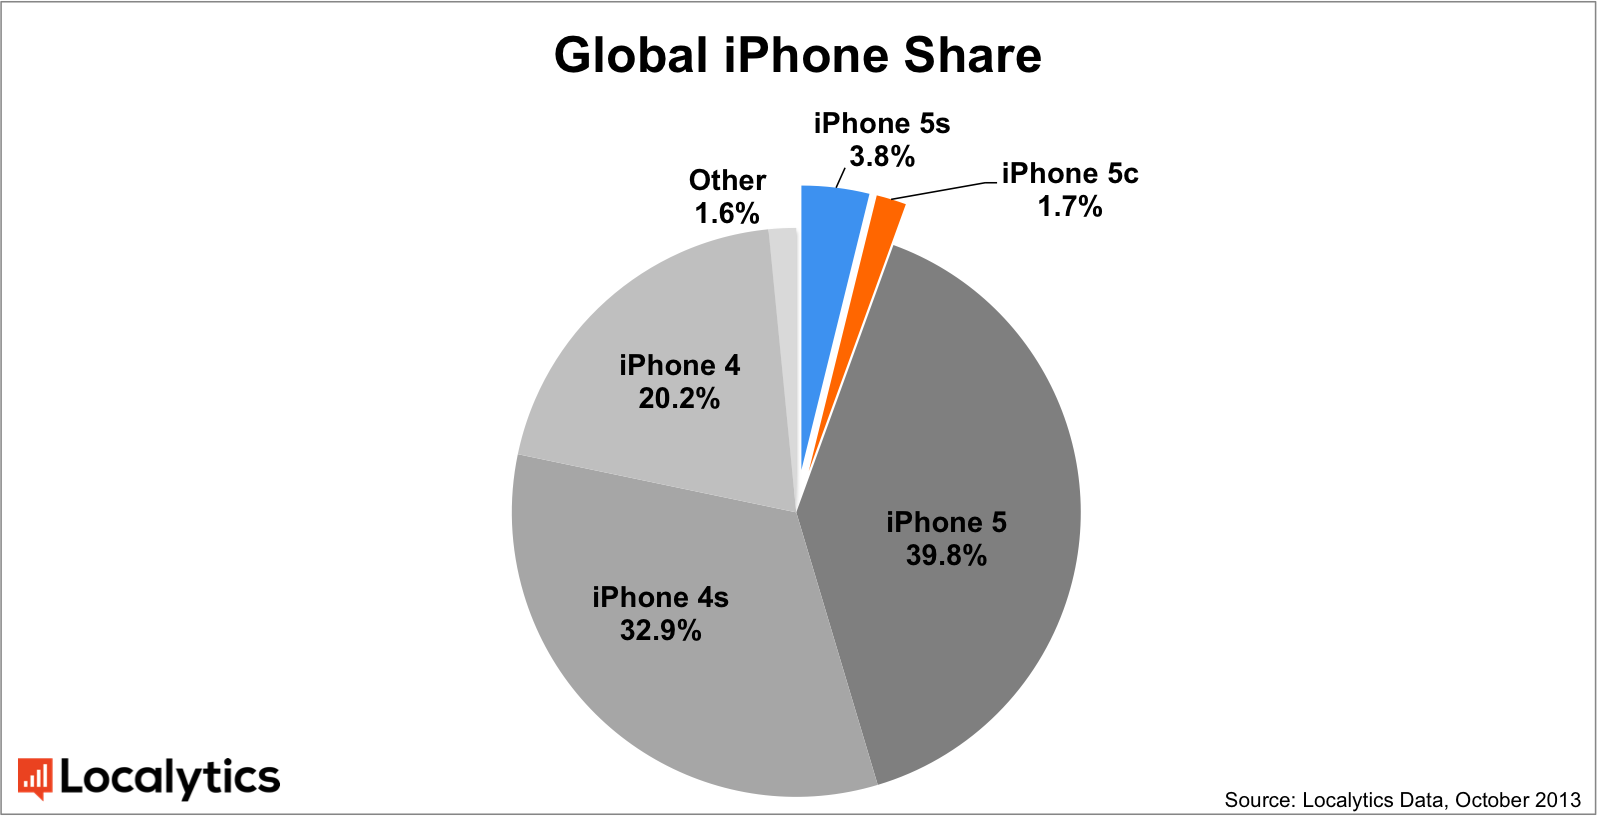 ios-phone-pie-chart-global